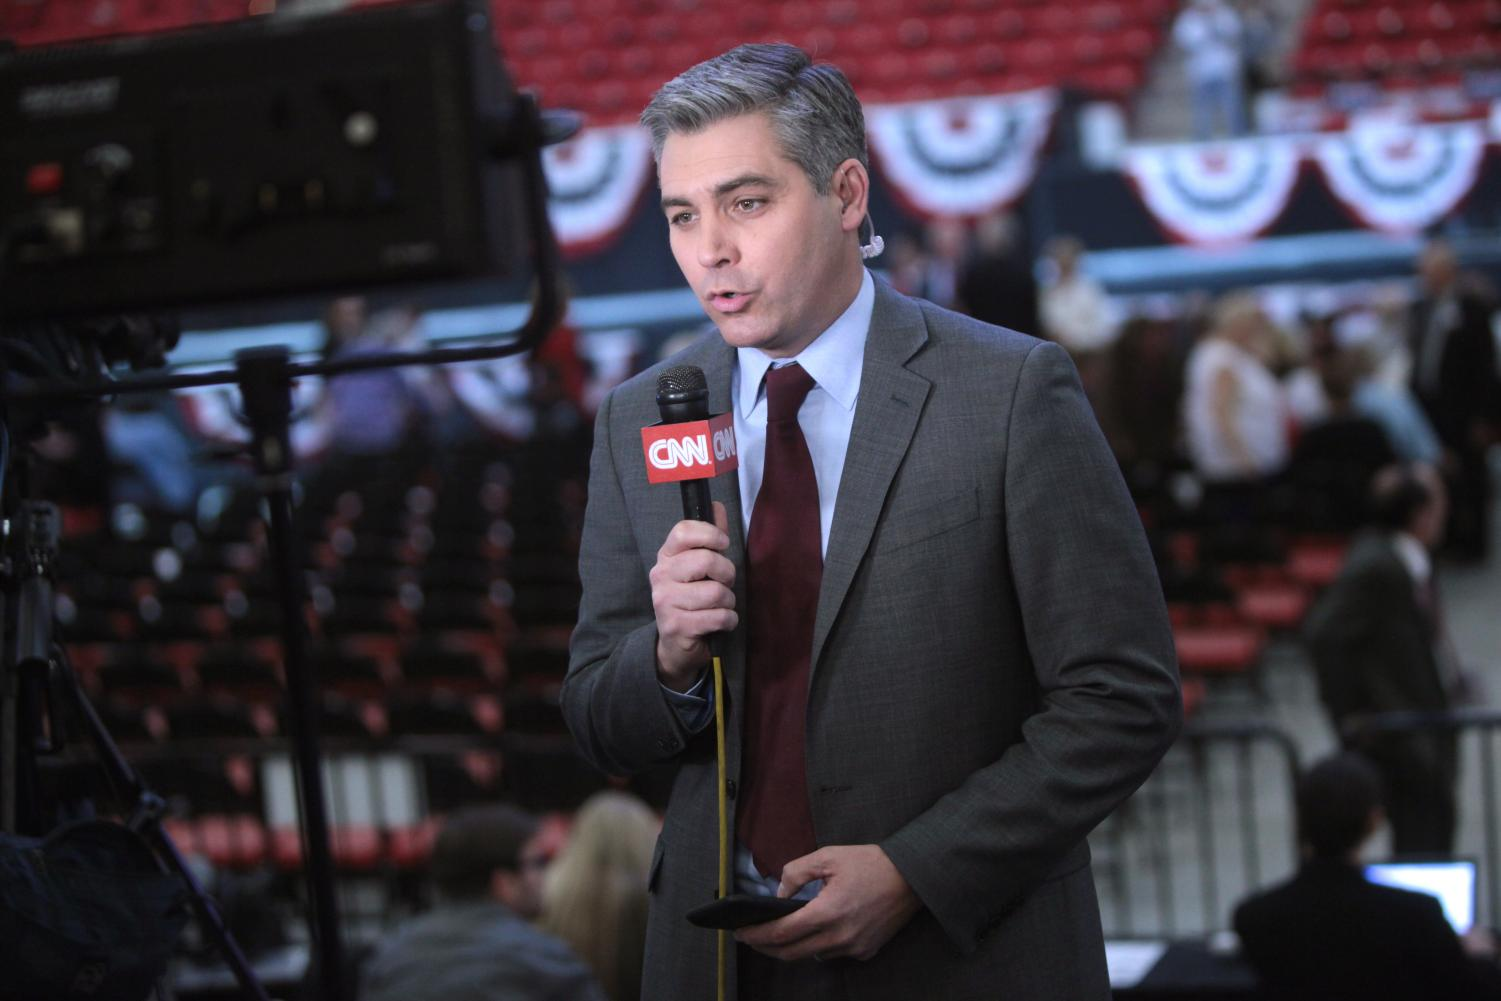 Jim Acosta speaks at a campaign rally for Donald Trump at the South Point Arena in Las Vegas, Nevada, on Feb. 22, 2016. Columnist Joe argues CNN and Trump depend on one another to gain more attention from the public eye.